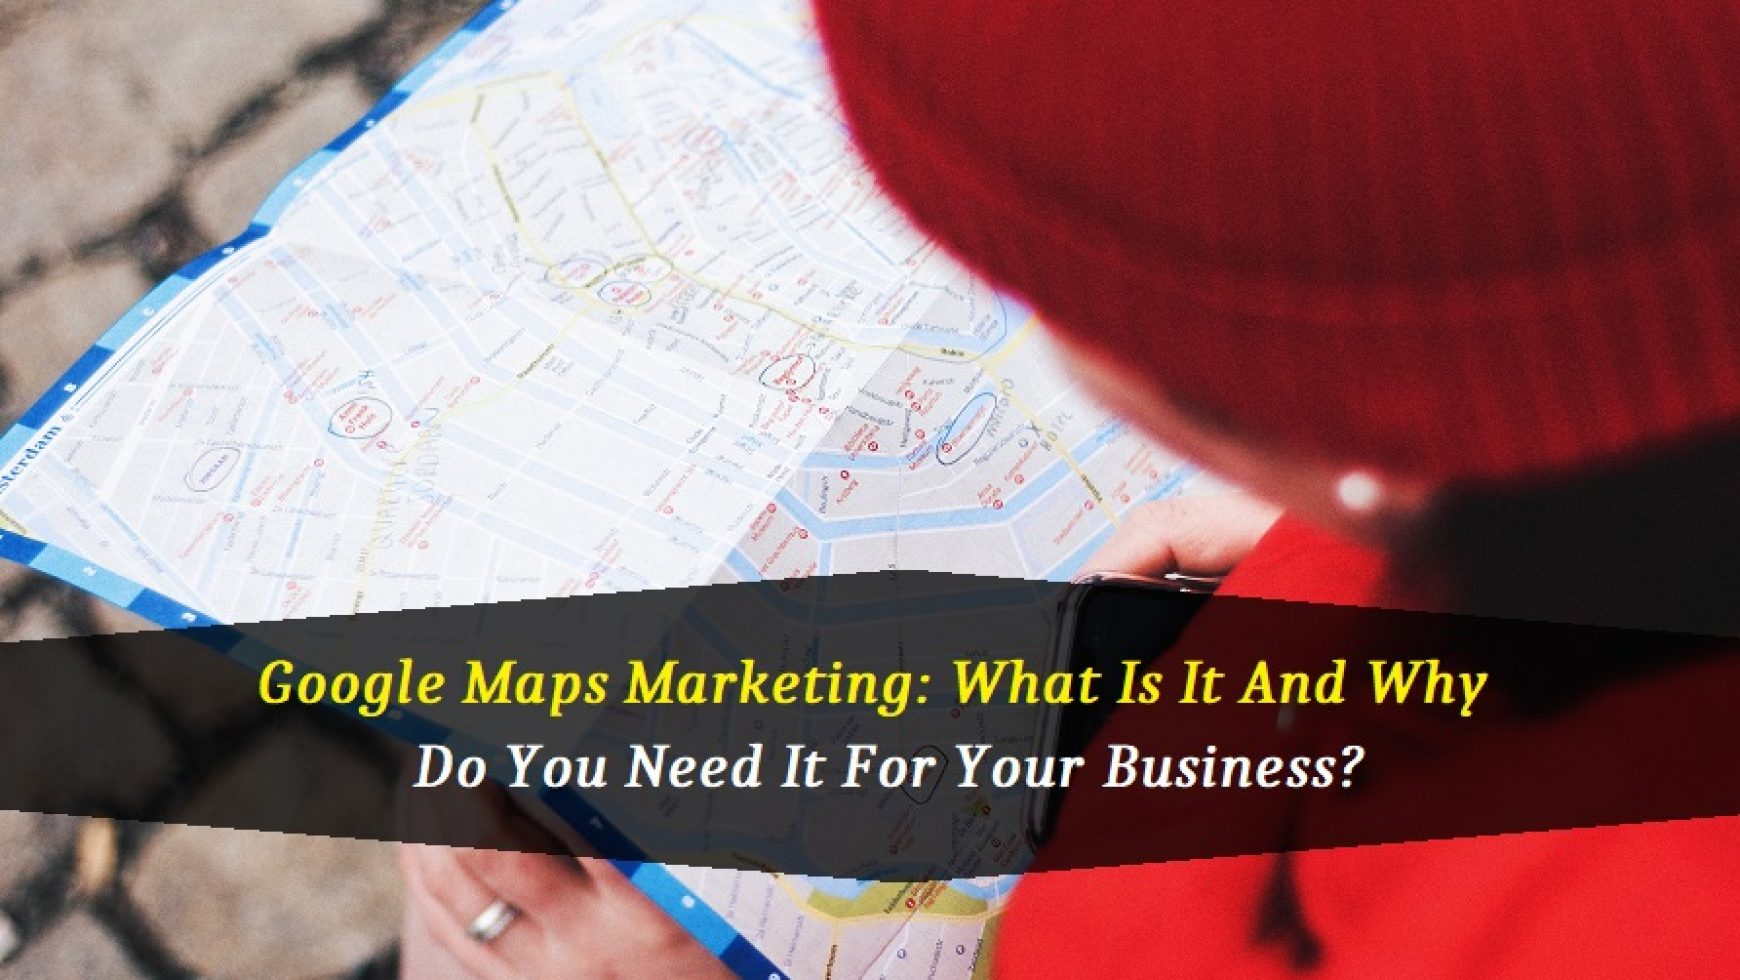 Google Maps Marketing: What Is It And Why Do You Need It For Your Business?